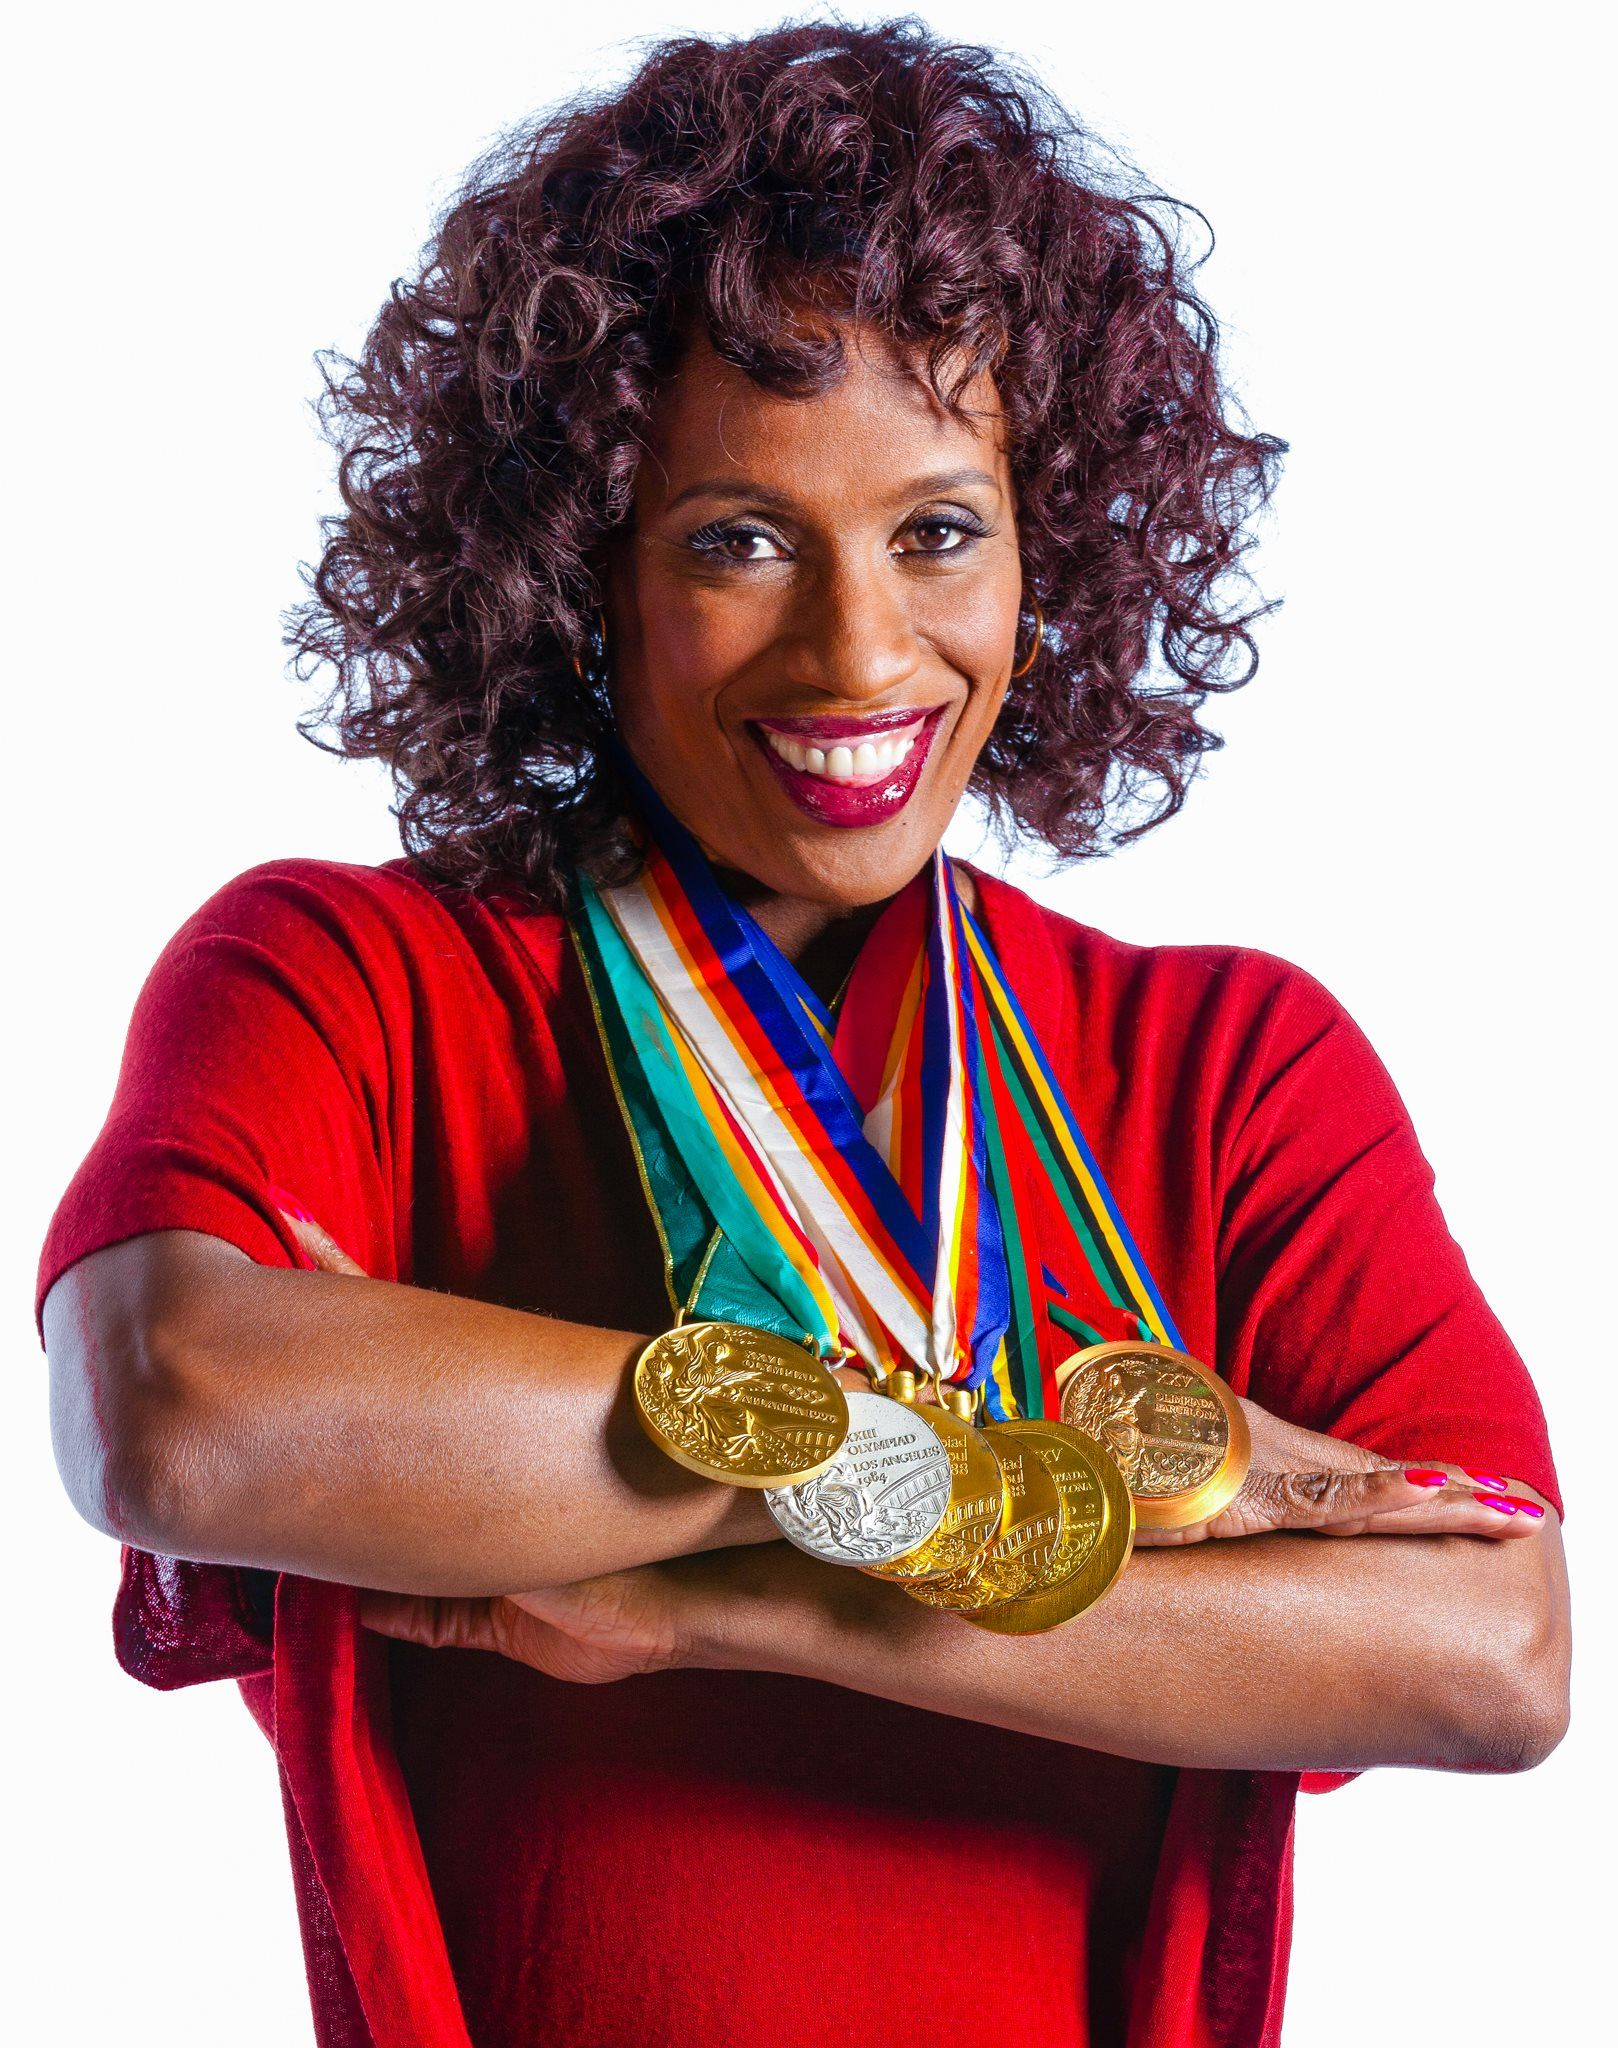 Jackie Joyner Kersee Is Often Referred To As The First Lady